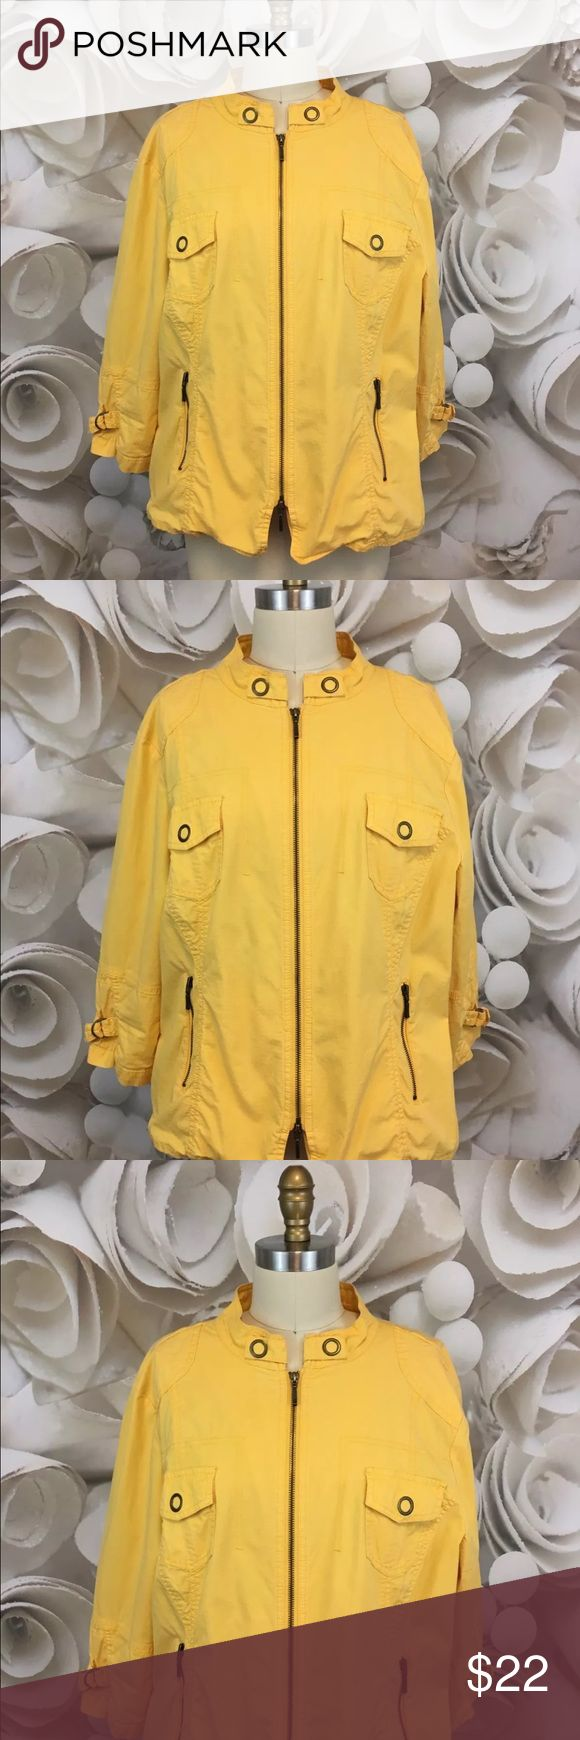 Chicos Jacket Retro Style Zip Up Yellow Sz XL 16W Chicos Womens Jacket Zip Up Retro Style Zip Up Yellow Sz 3 XL 16W EUC   Thank you for shopping Charlie Birdie's!!    Brand: Chico's  Style: Jacket  Condition: Excellent Used Condition  Fabric: 97% Cotton 3% Spandex  Size: Chico's Sz 3 / XL / 16W  Colors/Patterns: Yellow / Solid    Measurements:  Chest (Pit to pit): 46 inches around  Shoulder to hem: 26 inches long  Sleeve: 19 inches long (Rolled) Chico's Jackets & Coats Blazers